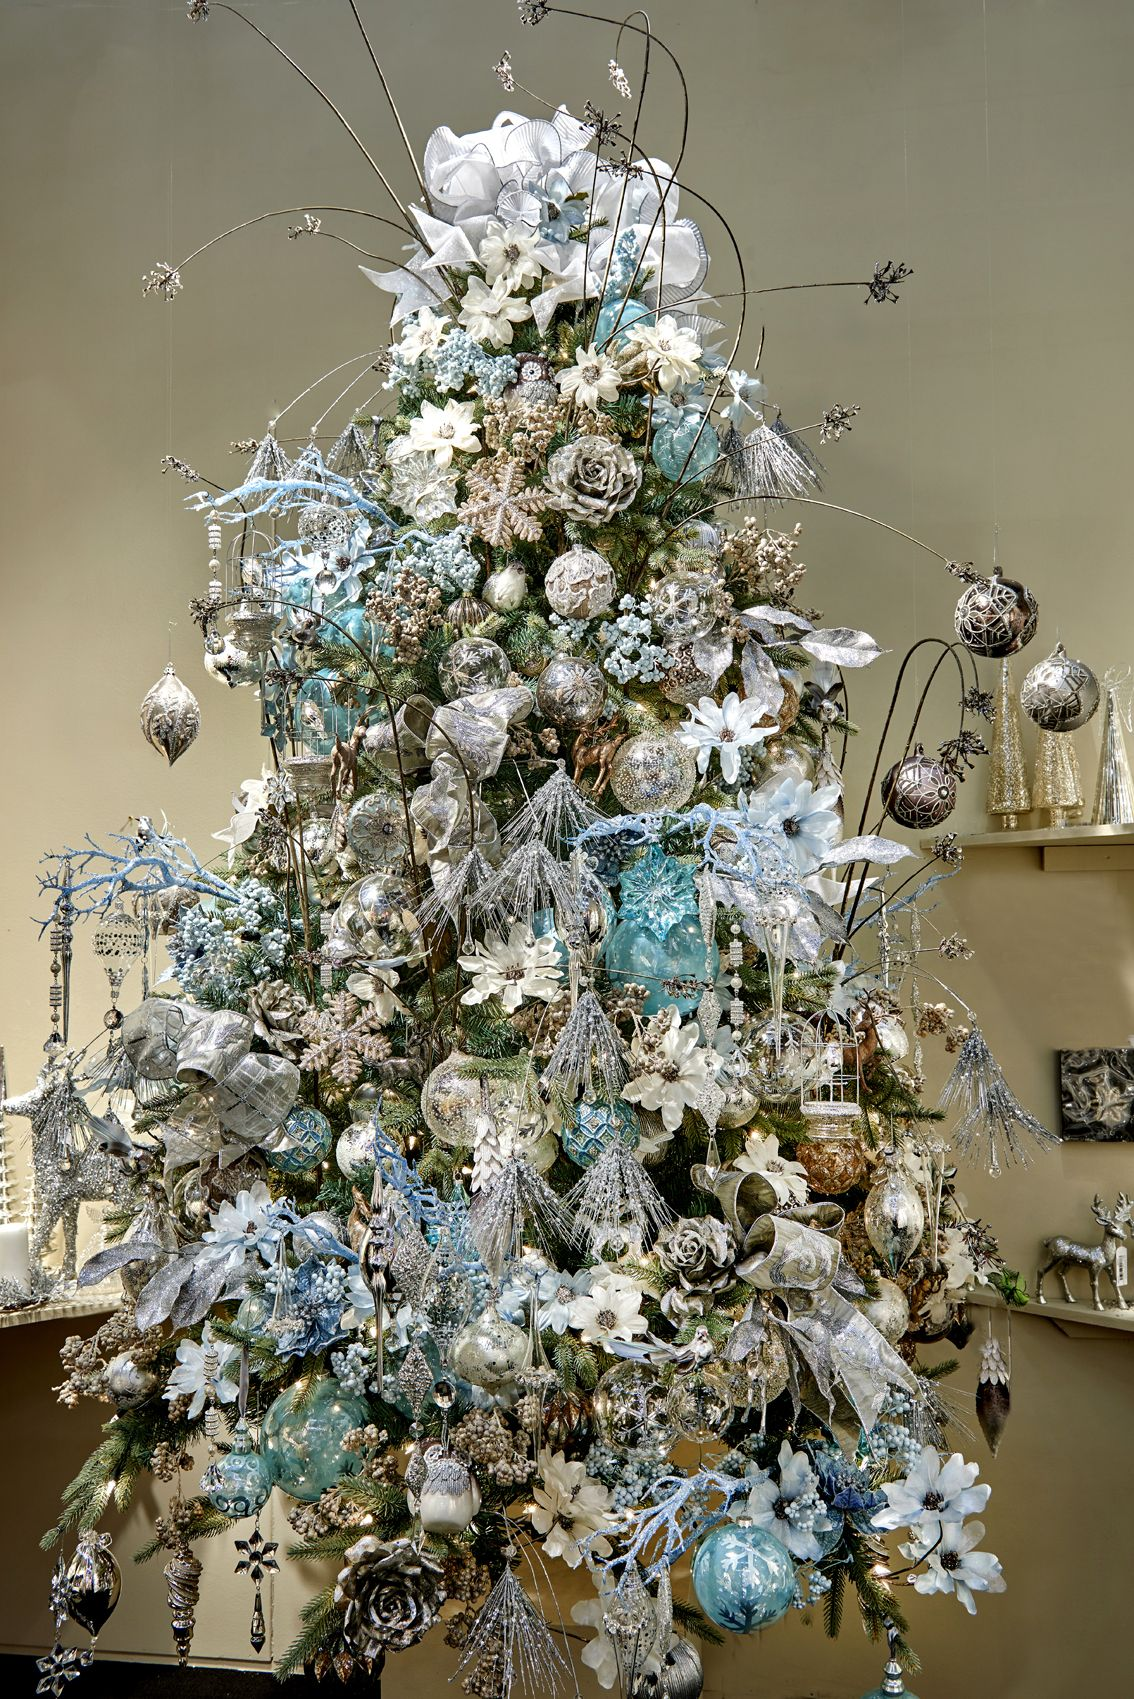 Addobbi Natalizi Goodwill.Silver Collection By Goodwill Belgium Christmas Tree Themes Beautiful Christmas Trees Holiday Christmas Tree